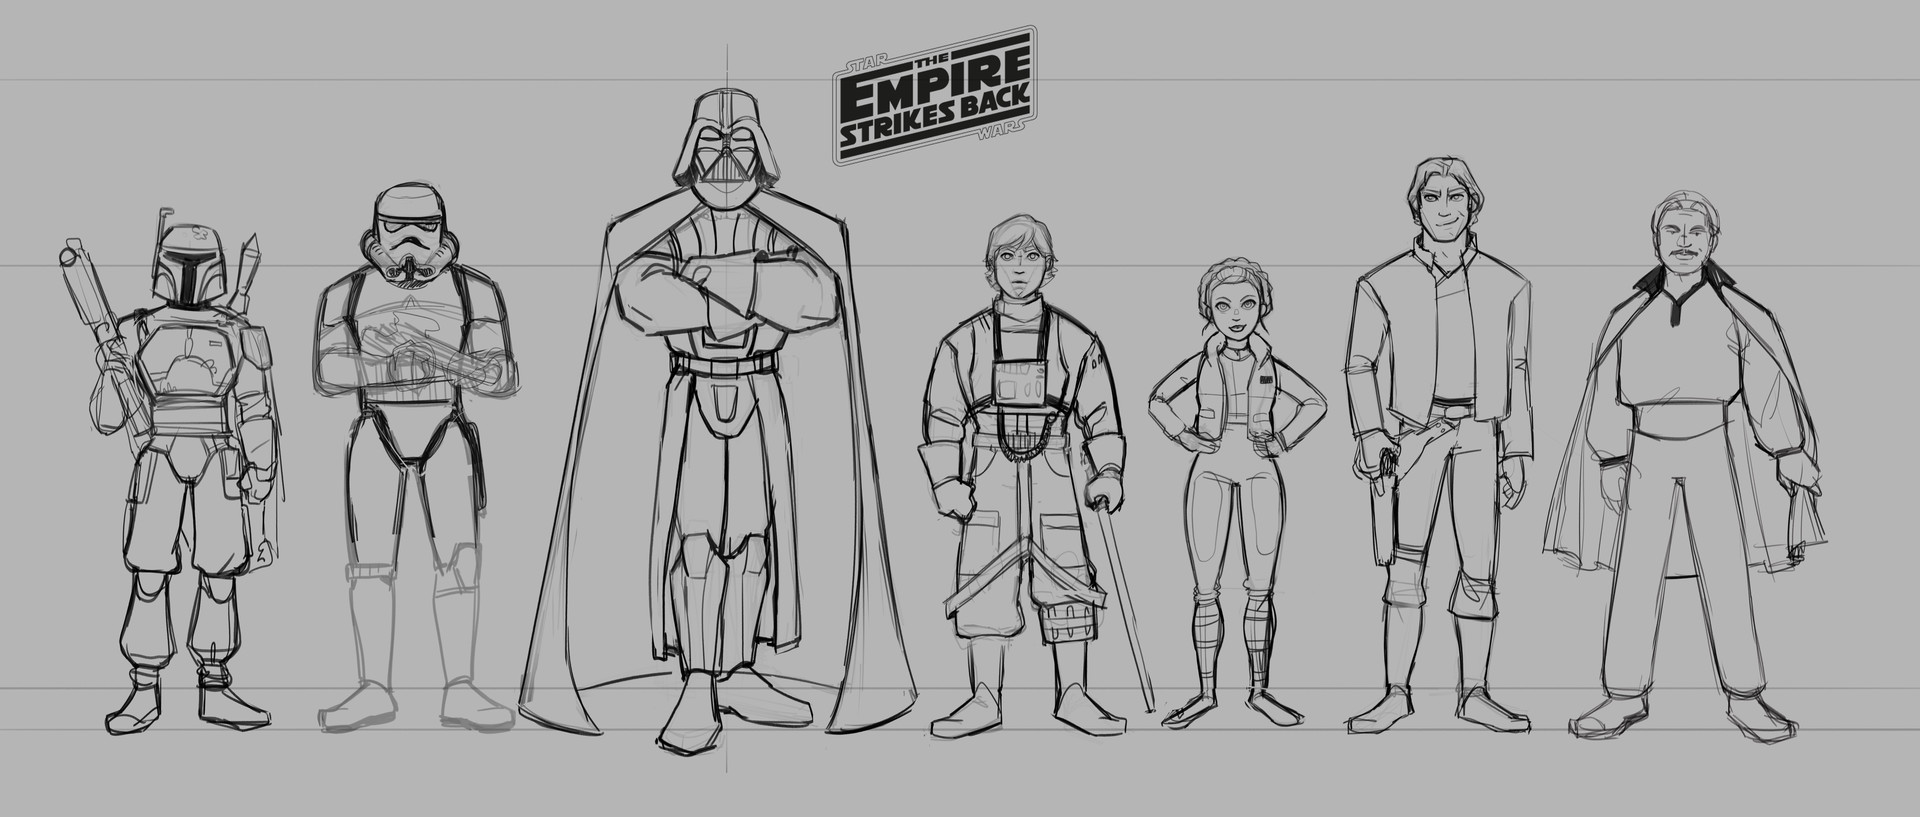 Alice hamel star wars lineup sketch